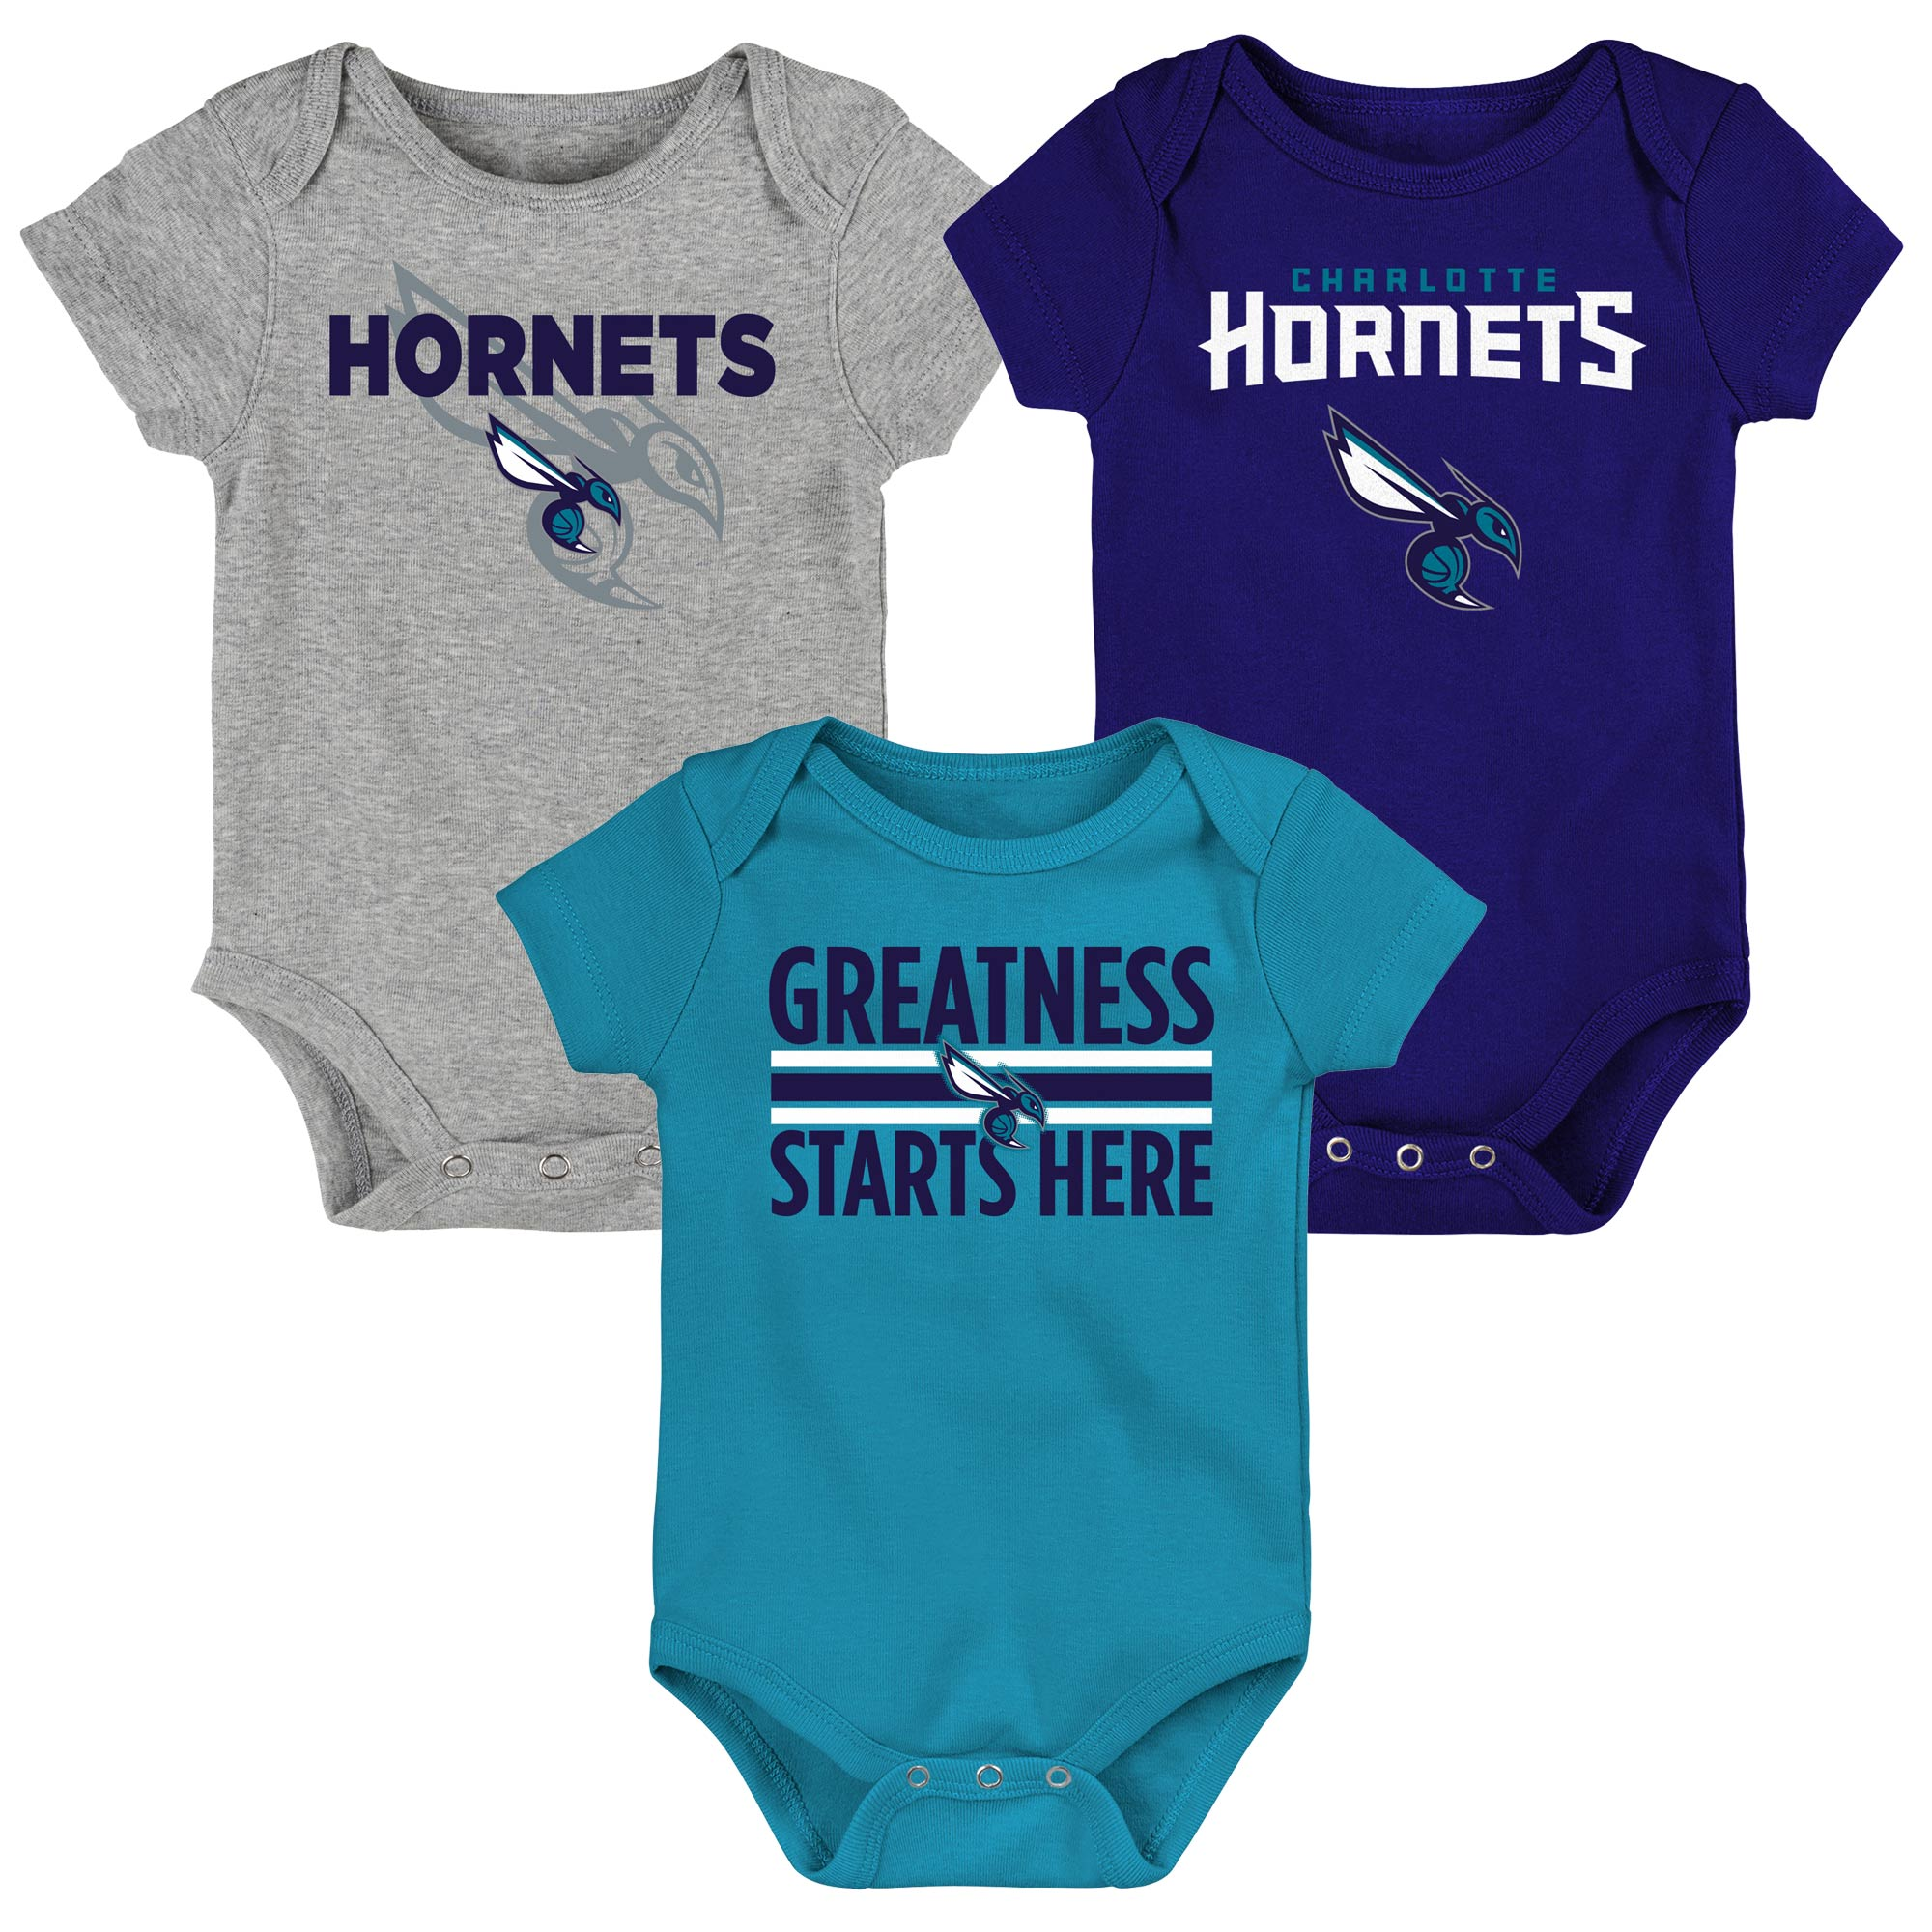 Charlotte Hornets Newborn & Infant Three-Pack Bodysuit Set - Purple/Teal/Gray